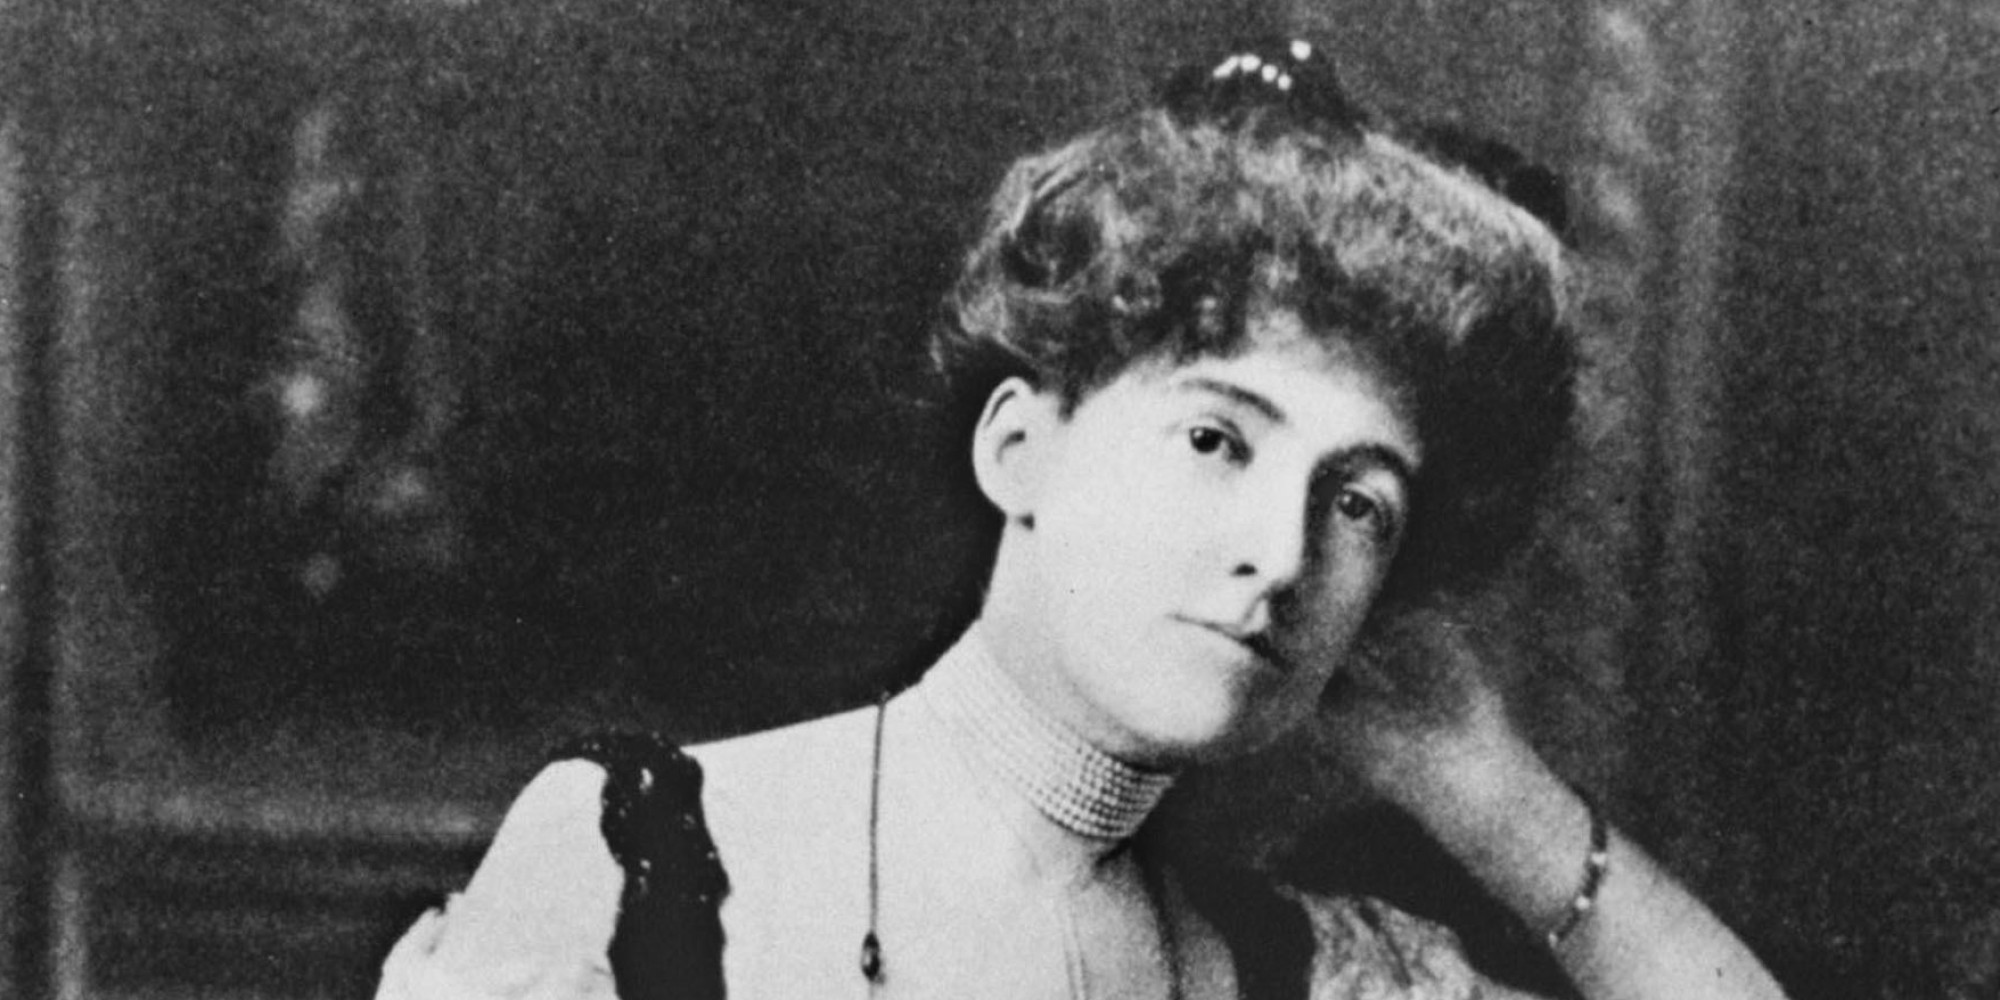 Famous Women in History - Edith Wharton - important women in nyc history famous women in history Things To Do in NYC: Finding New York City's Famous Women in History Edith Wharton